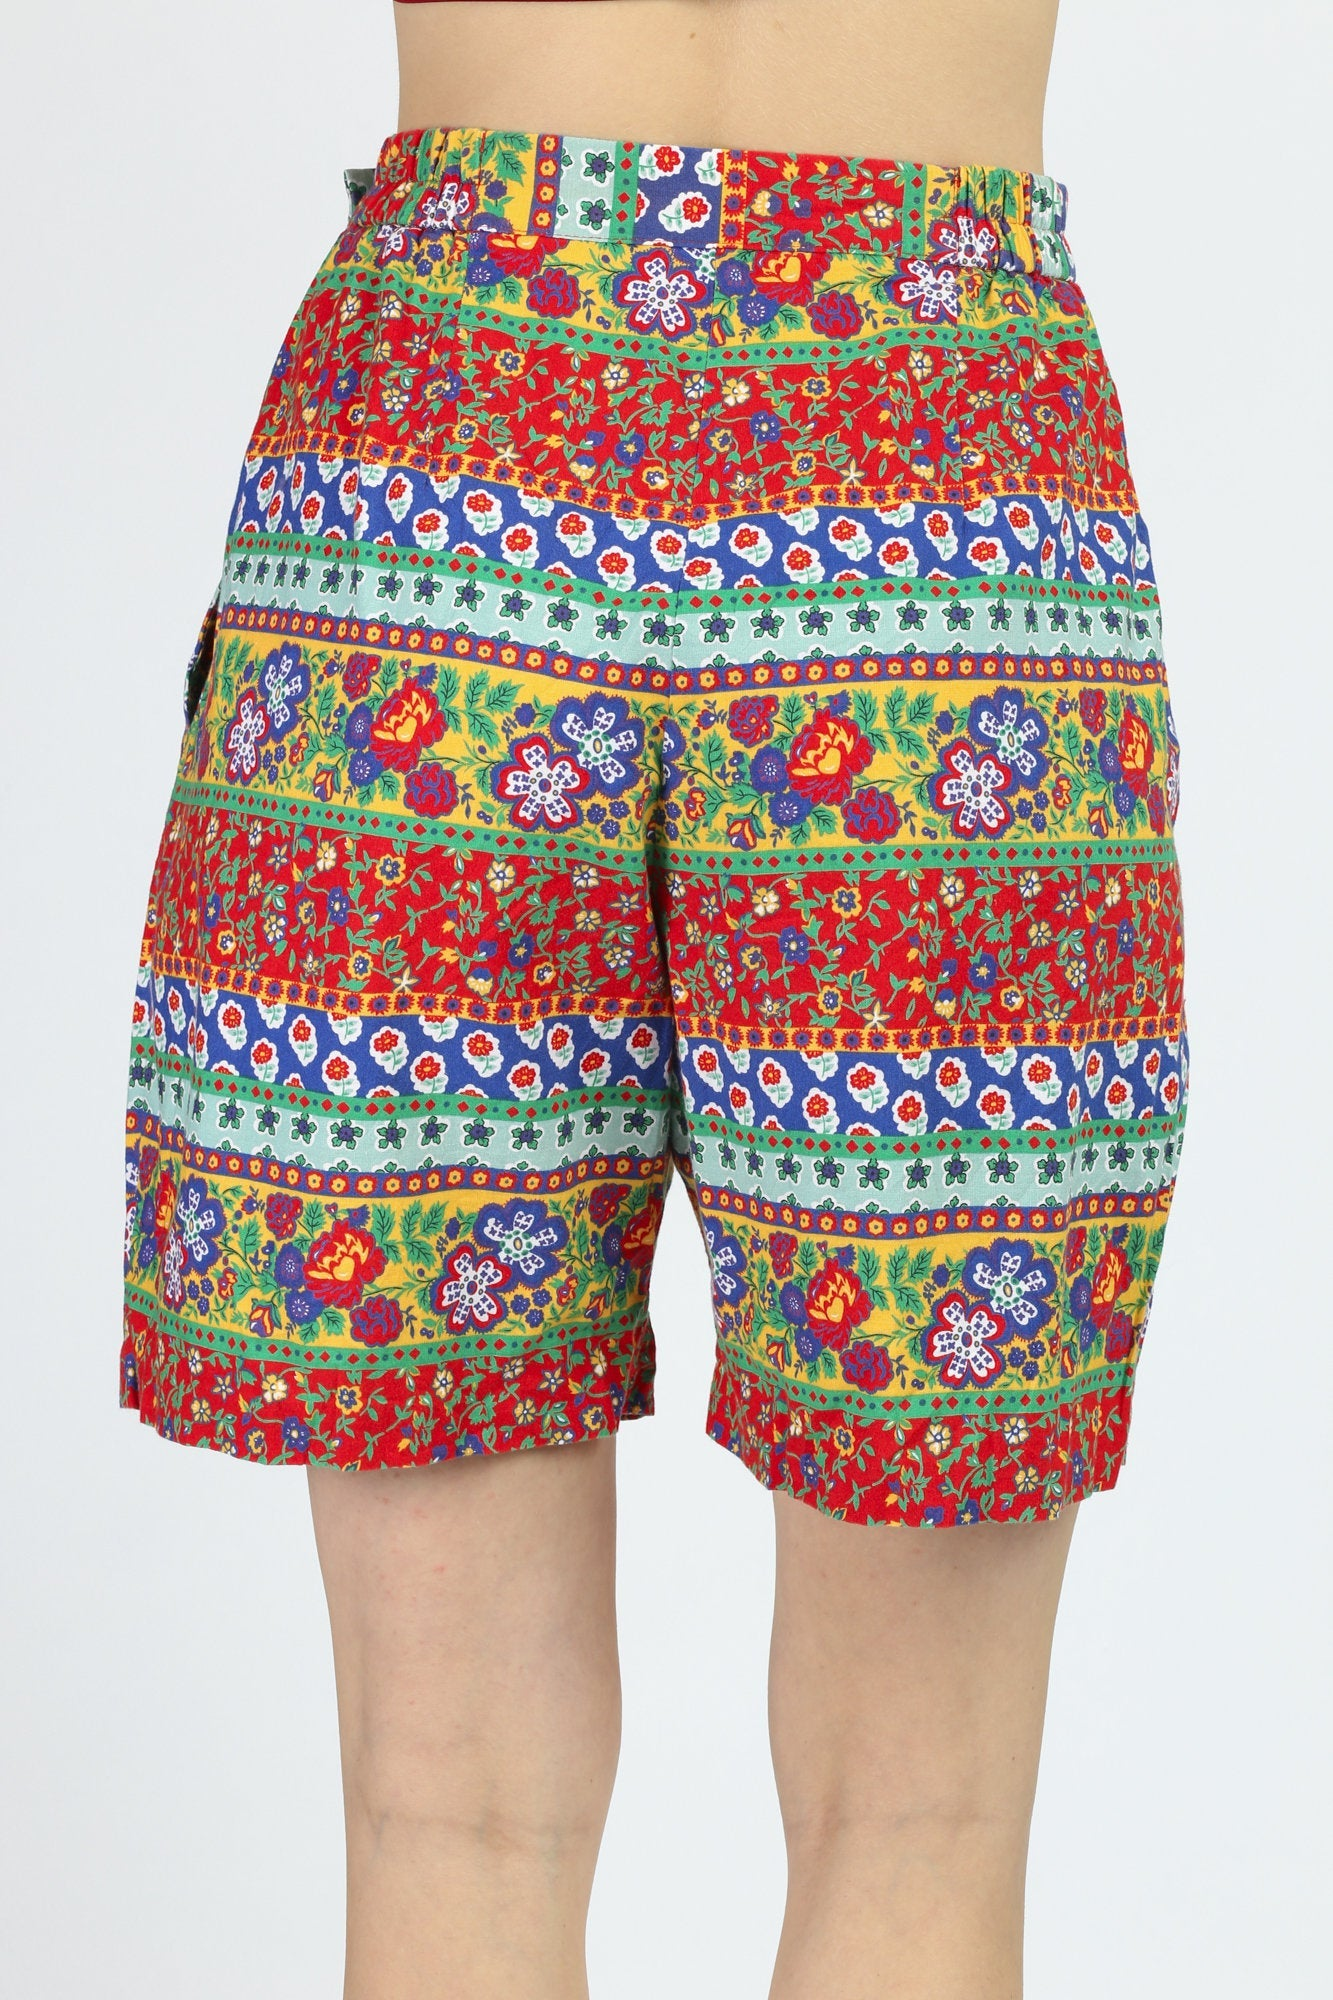 90s Floral Striped Shorts - Medium